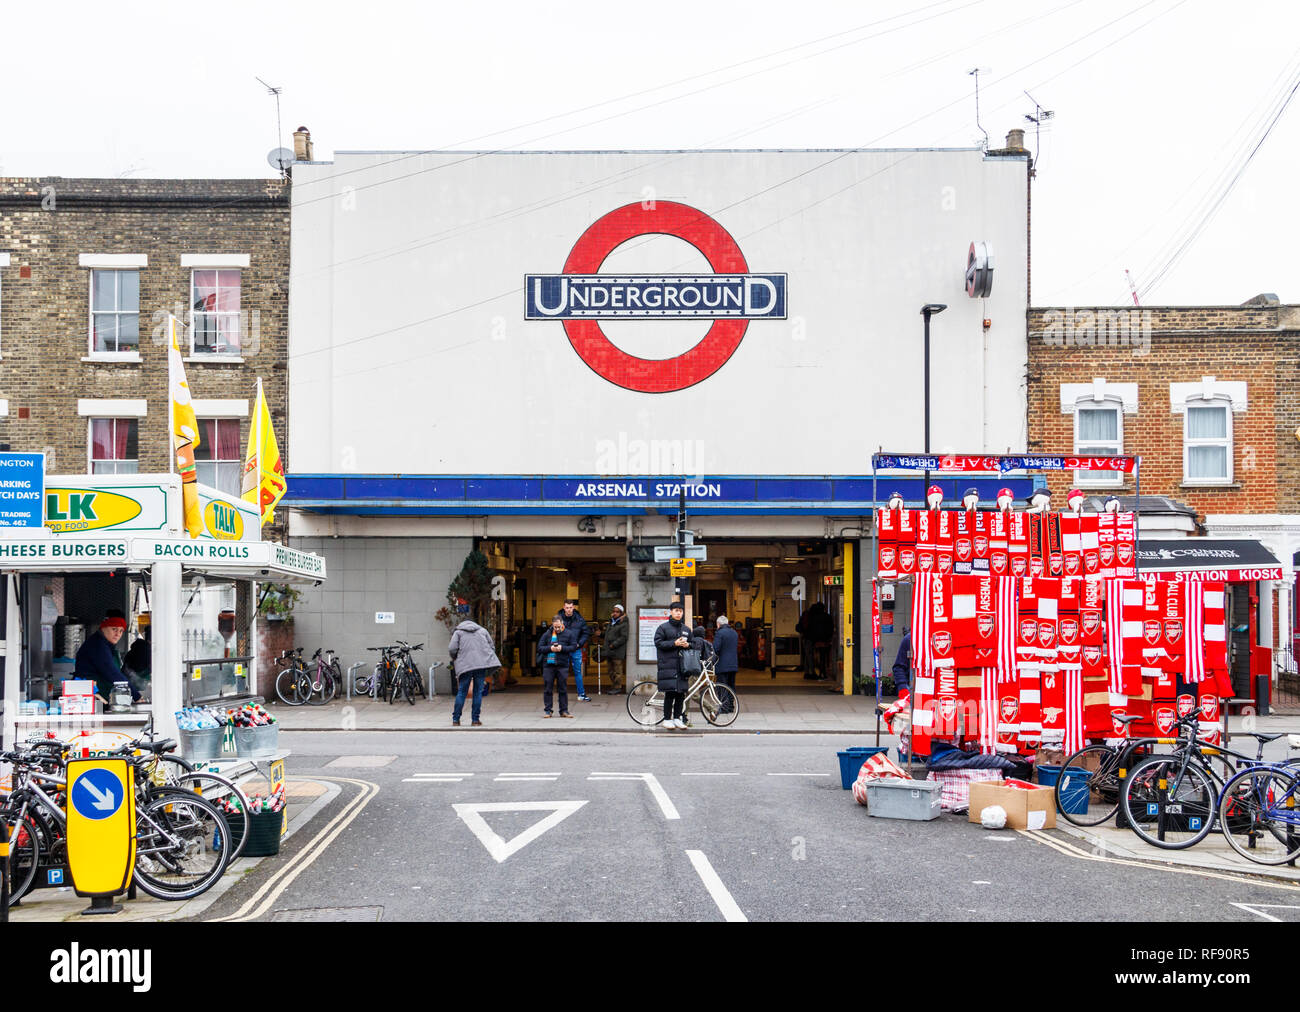 Arsenal tube station, on a match day (Arsenal v. Chelsea), prior to the arrival of fans, Gillespie Road, London, UK - Stock Image